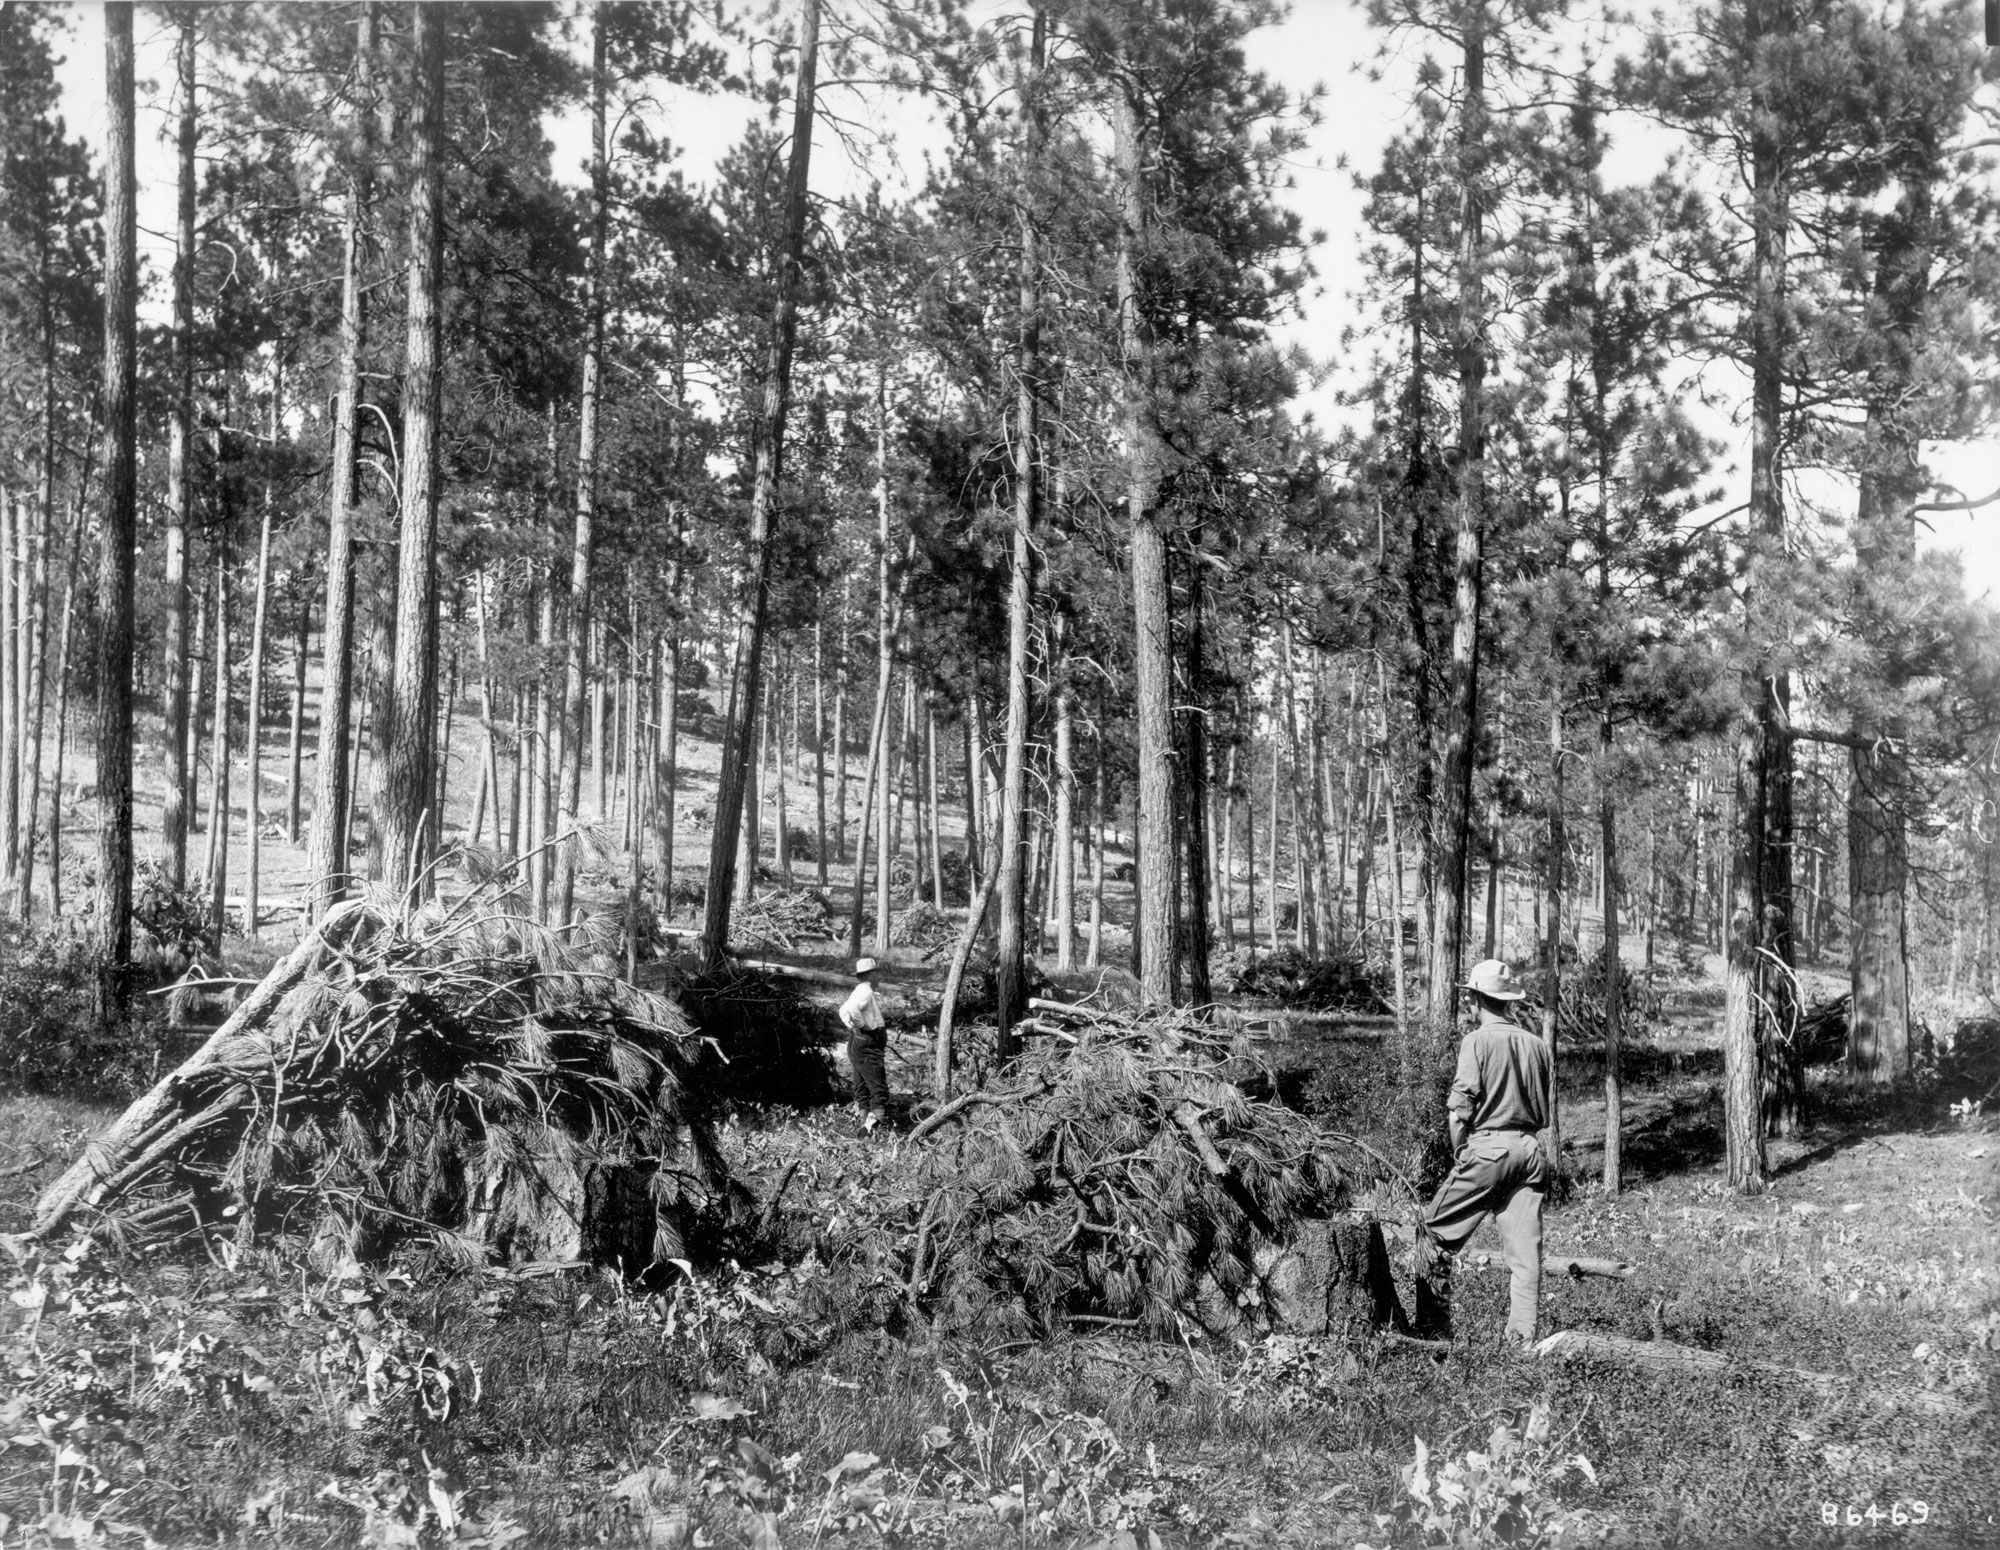 1909. Looking northeast through a more heavily stocked ponderosa pine stand. The ground cover around C. H. Gregory (in distance) and W. W. White is predominantly herbaceous species with a high incidence of basalmroot. The dark low-growing shrub around White appear to be snowberry. Large willows are evident on the left edge of the photo and in front of White.